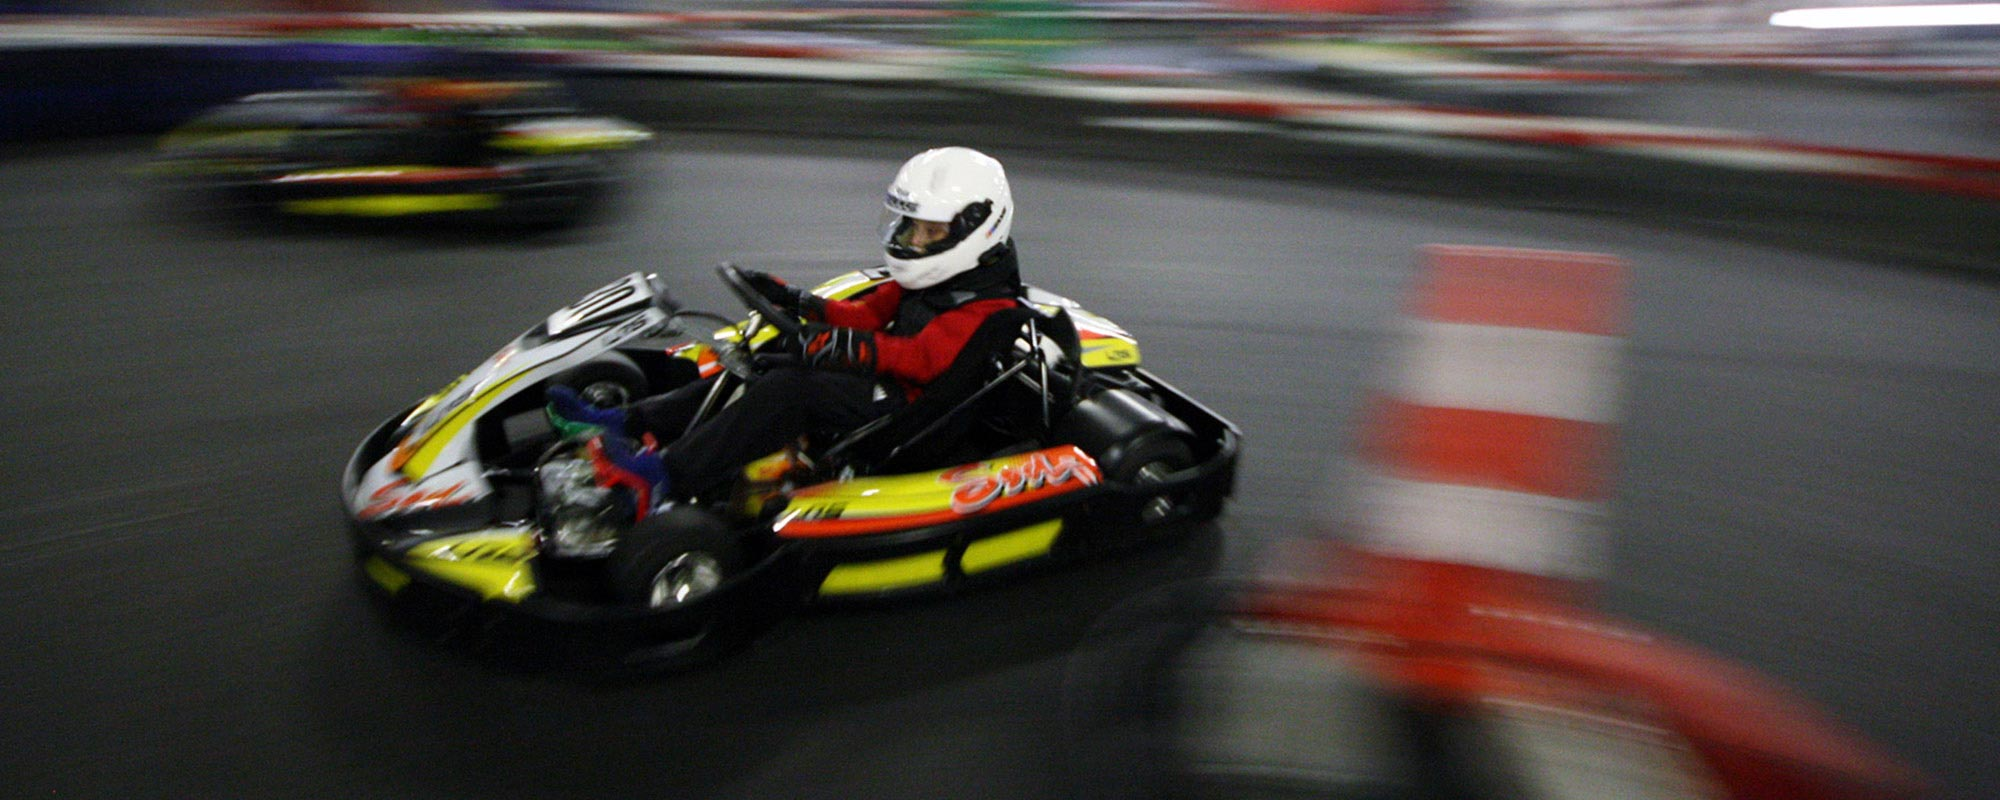 ebafkc-juniorkarting-2000x800-19